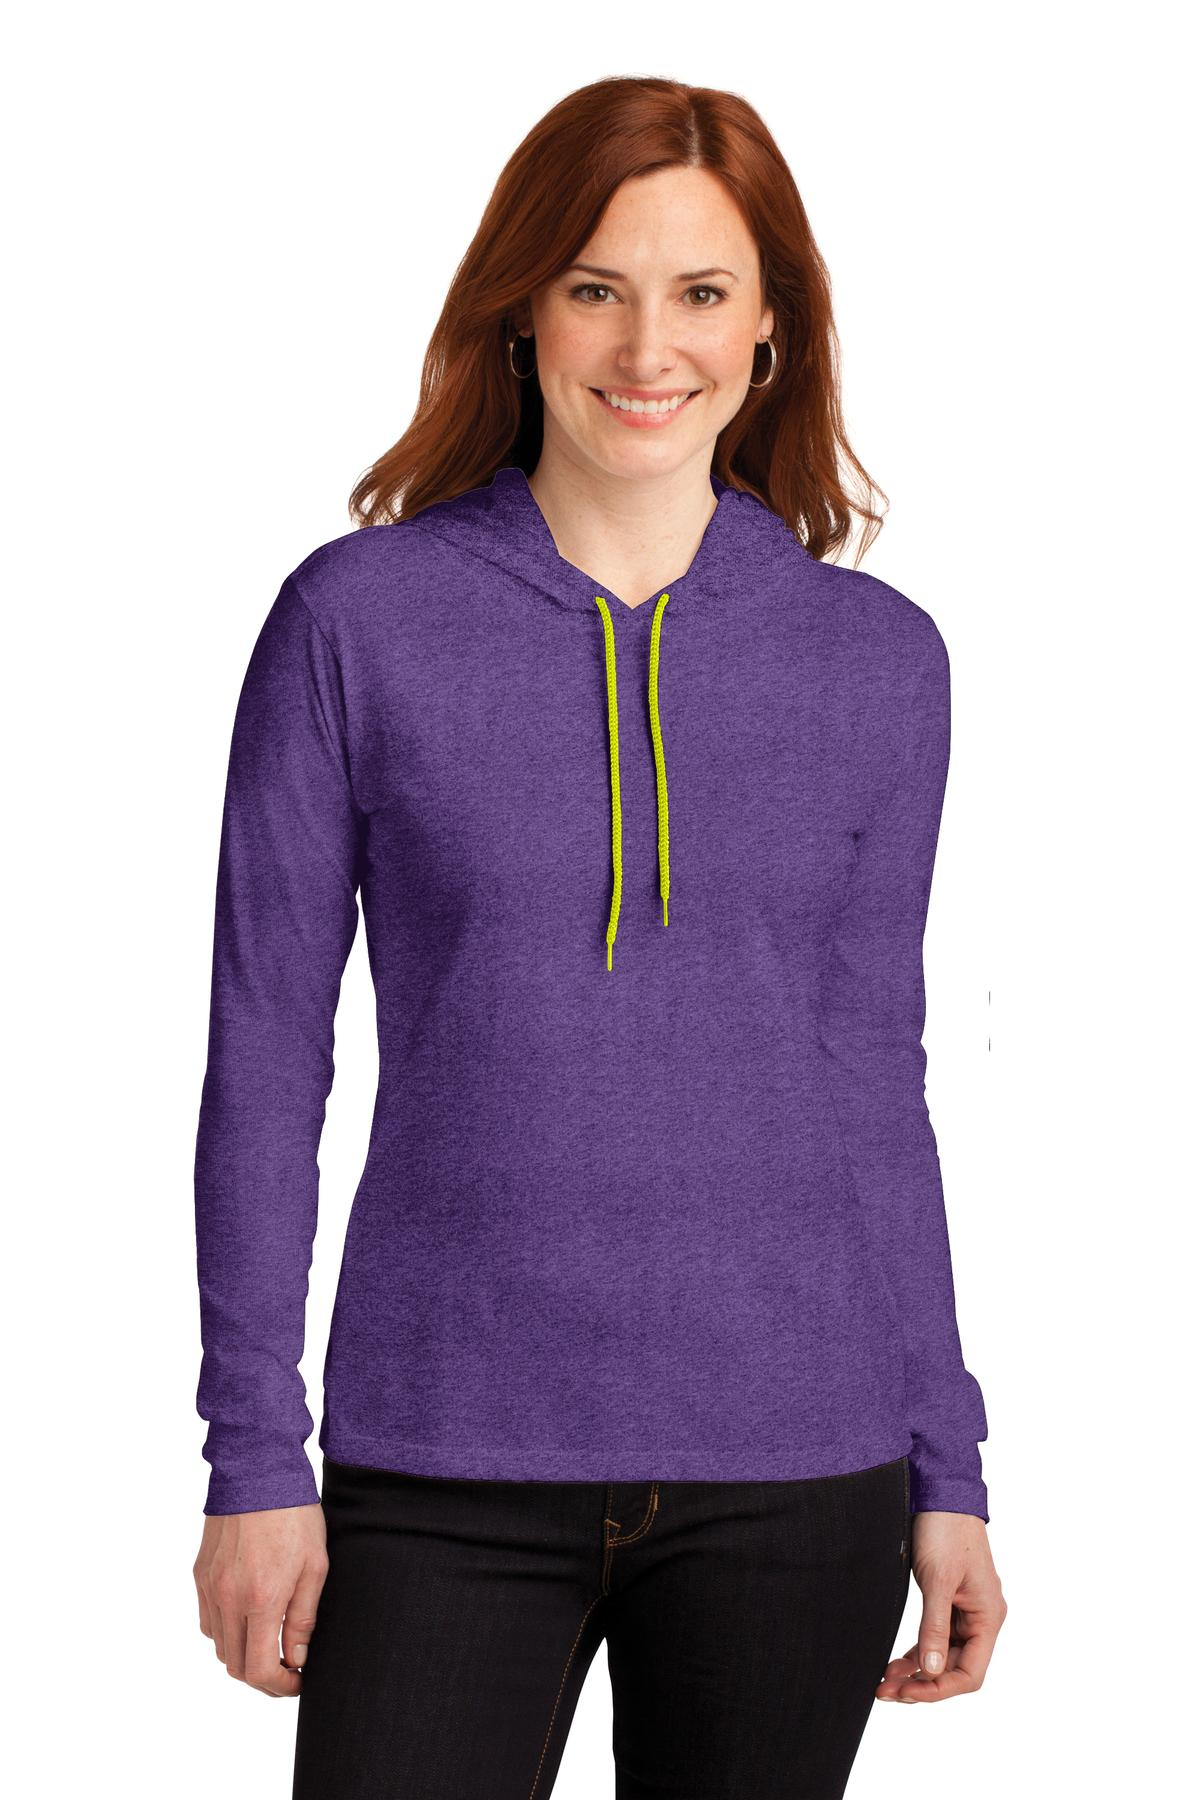 Anvil ®  Ladies 100% Combed Ring Spun Cotton Long Sleeve Hooded T-Shirt. 887L - Heather Purple/ Neon Yellow